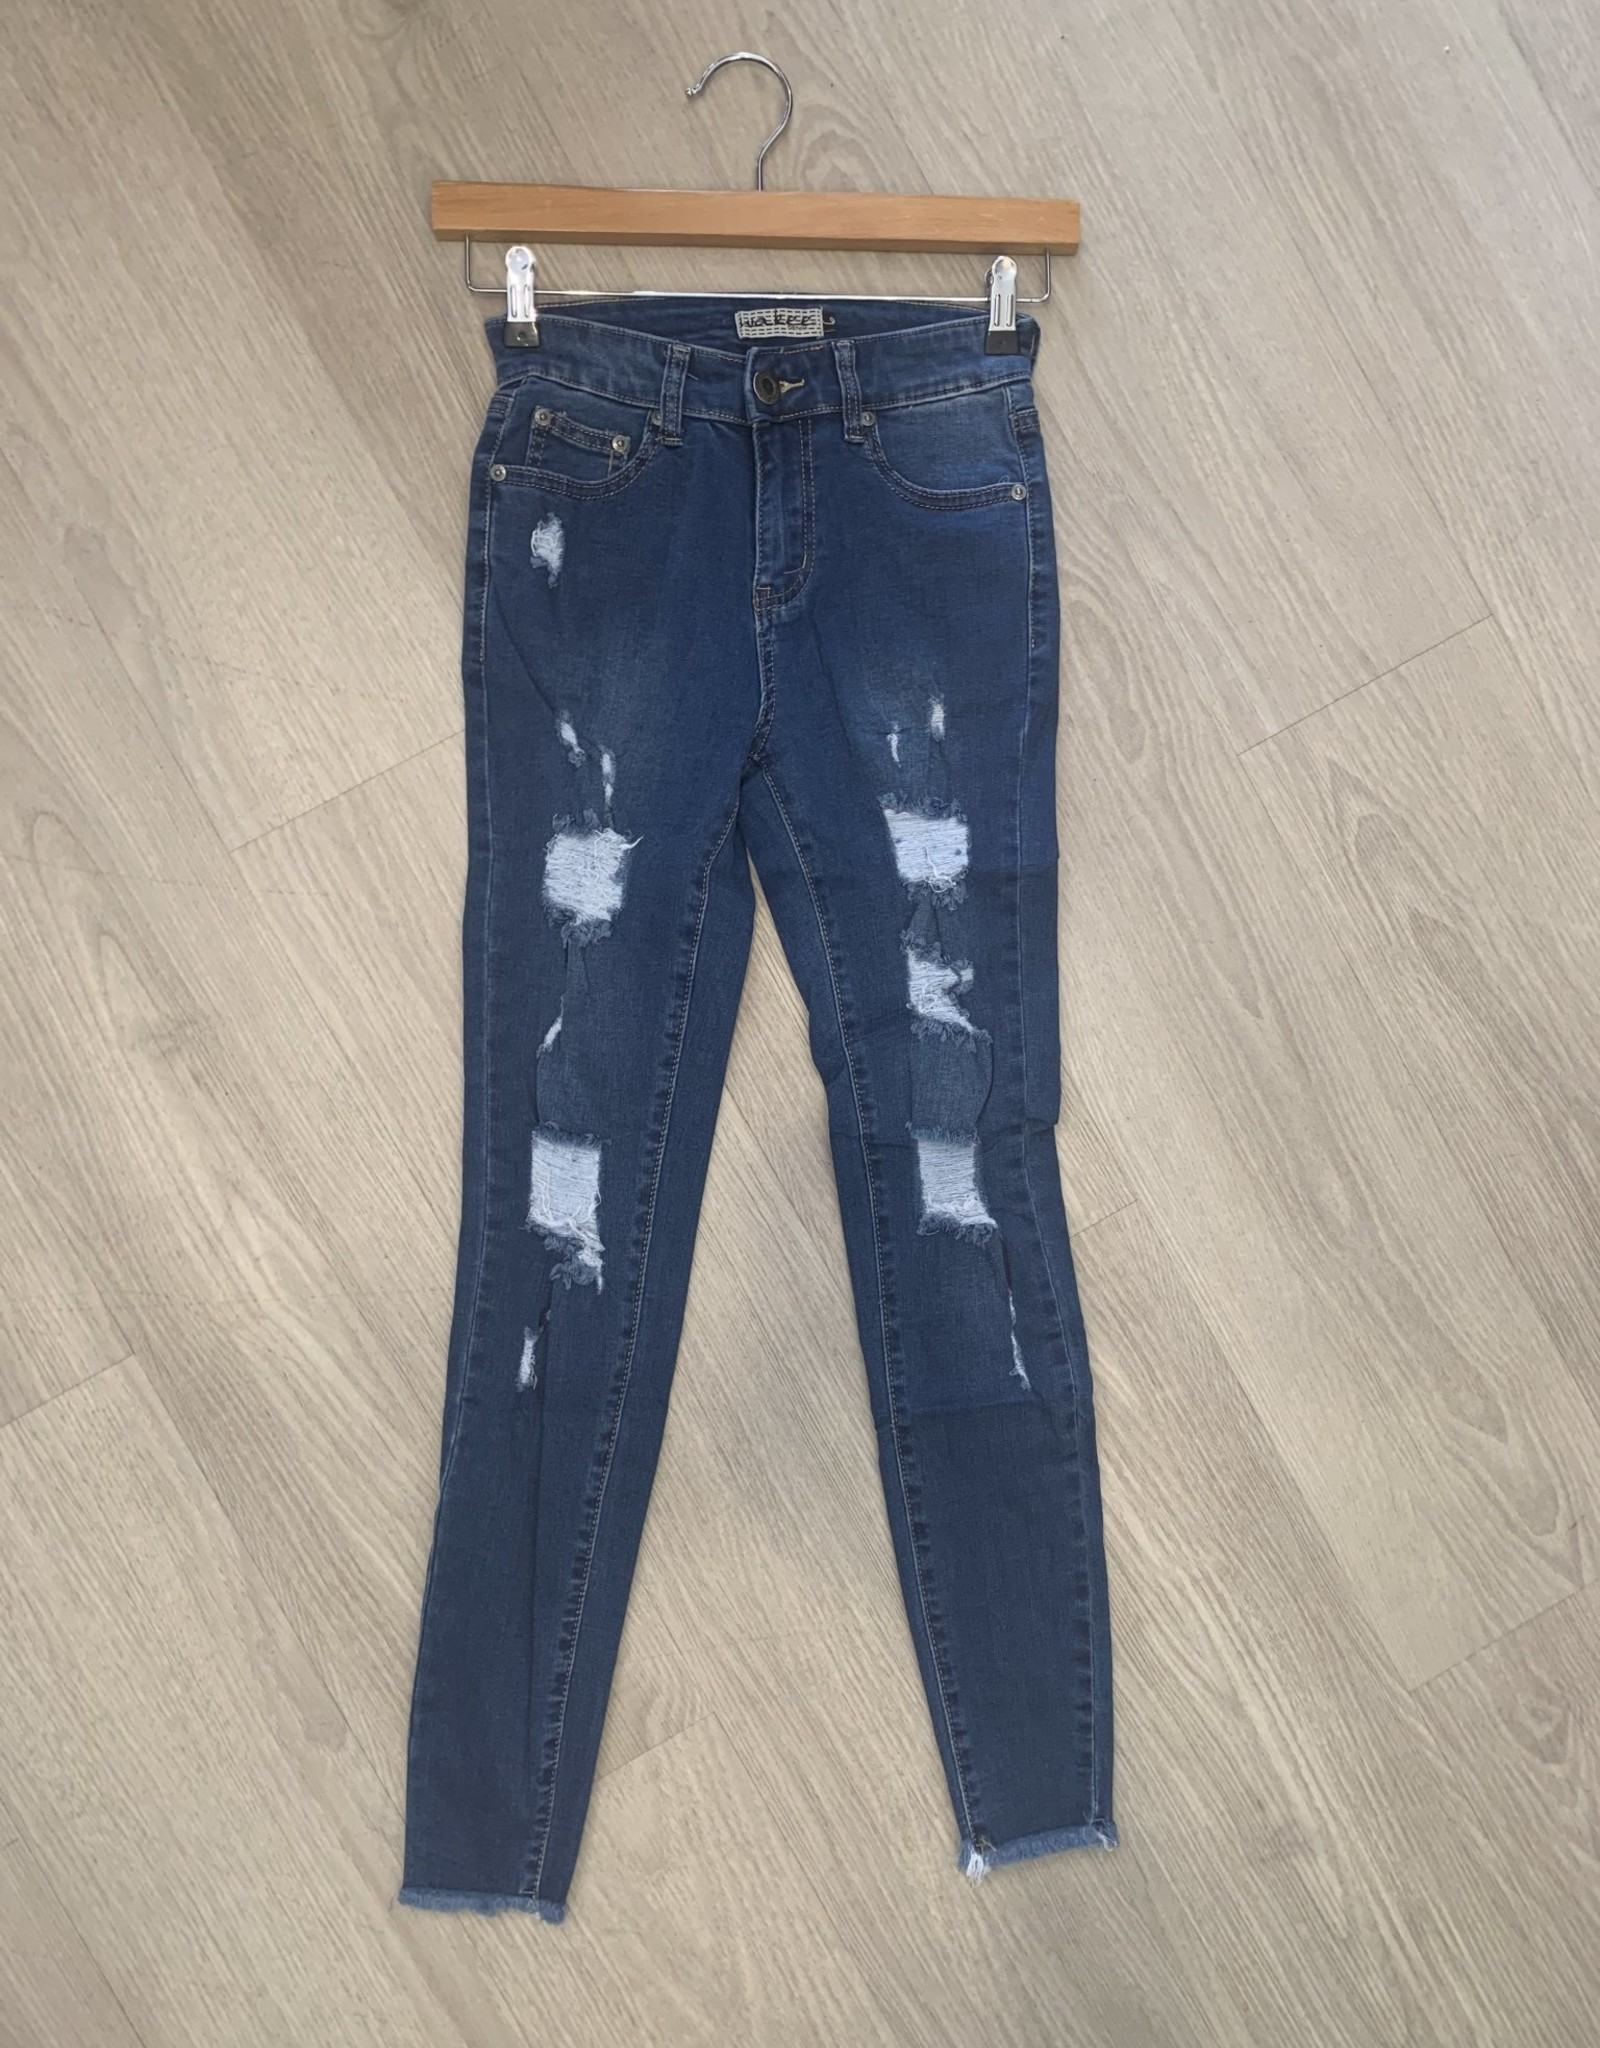 Wakee - Onyx Designer Ripped Jeans with Backing